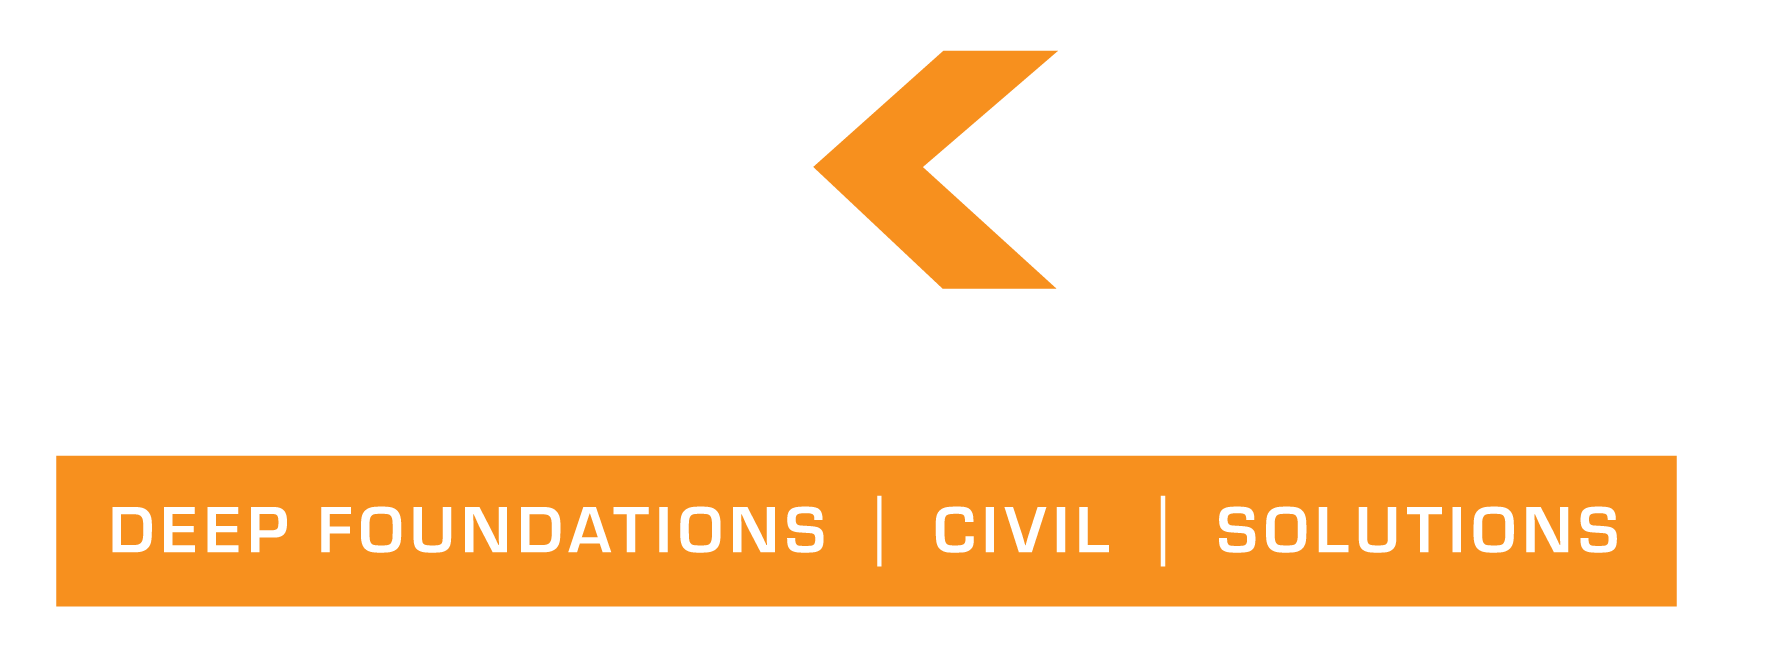 Baker Gulf Coast Industrial. Deep foundations, civil, solutions